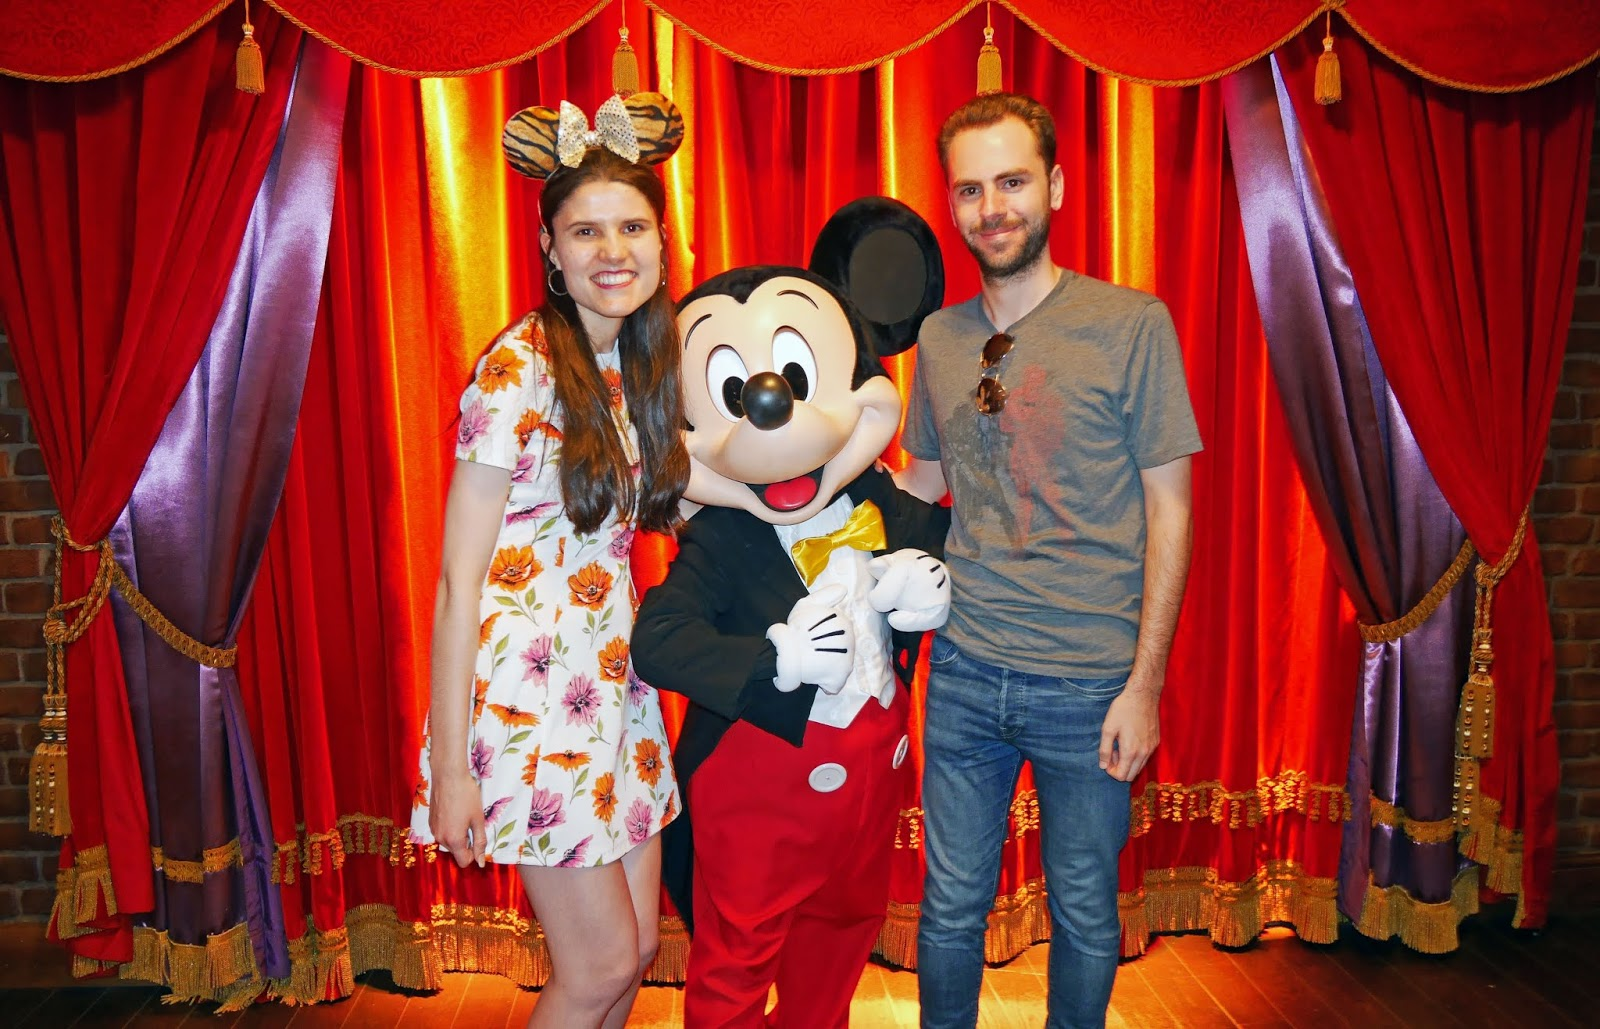 Meeting Mickey Mouse at Disneyland Paris